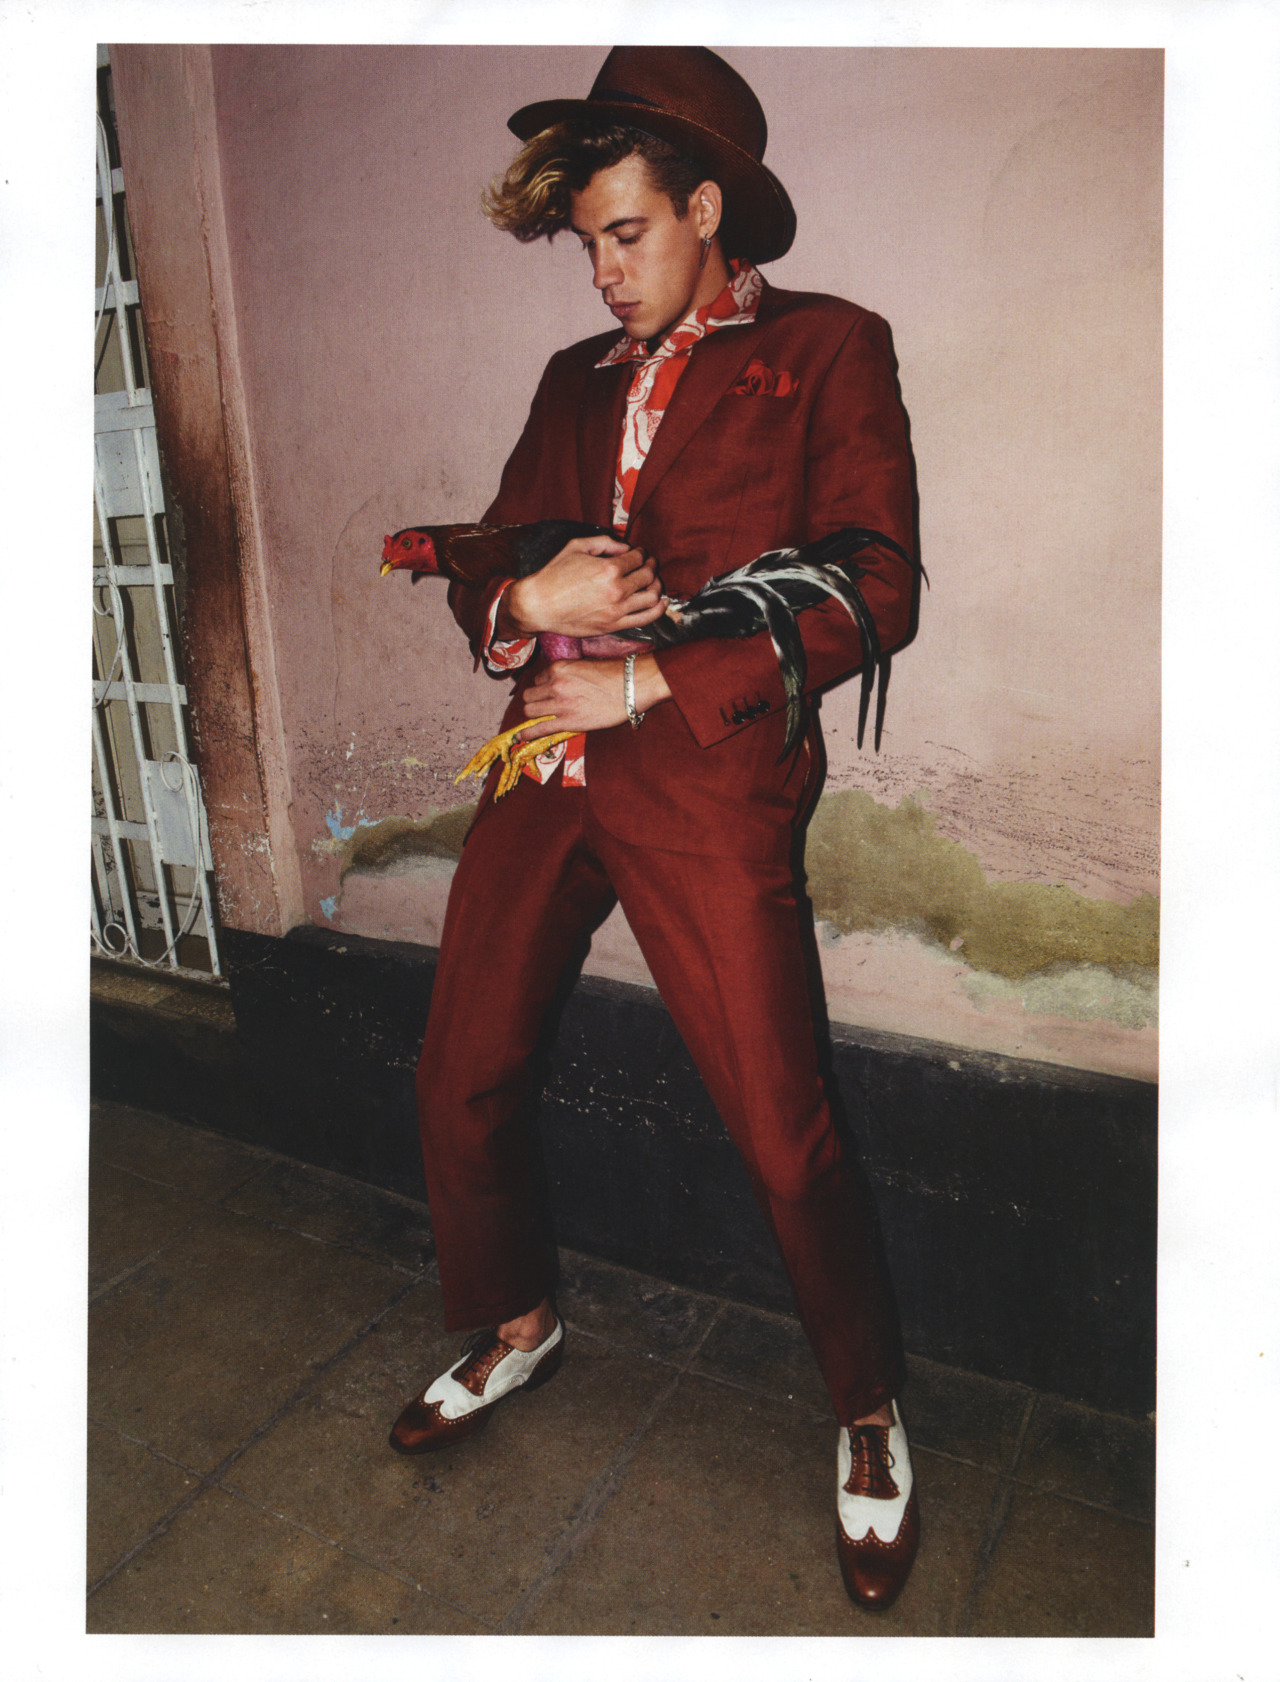 Lyle Lodwick for Vogue Homme International Spring Summer 2013 Photographer: Glen Luchford Stylist: Anastasia Barbieri